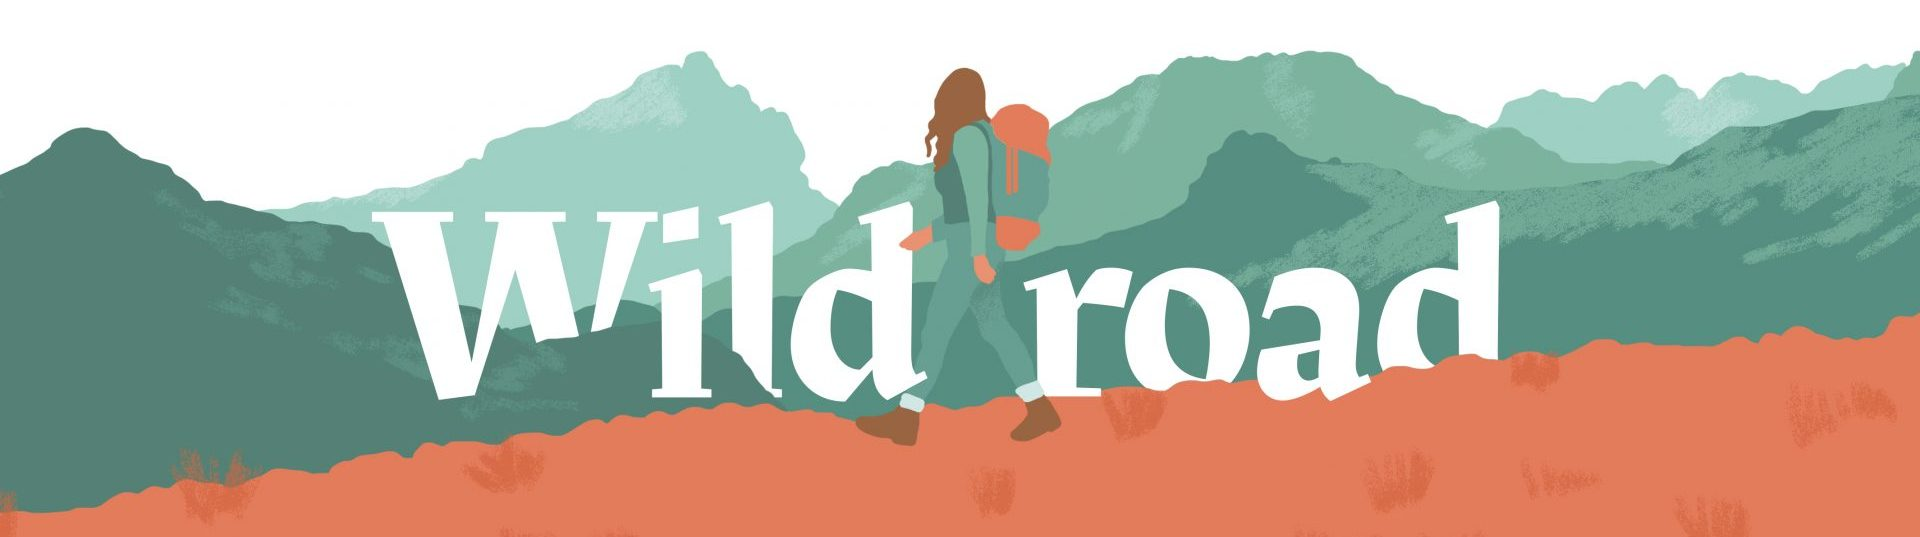 Wild Road – blog aventure & outdoor